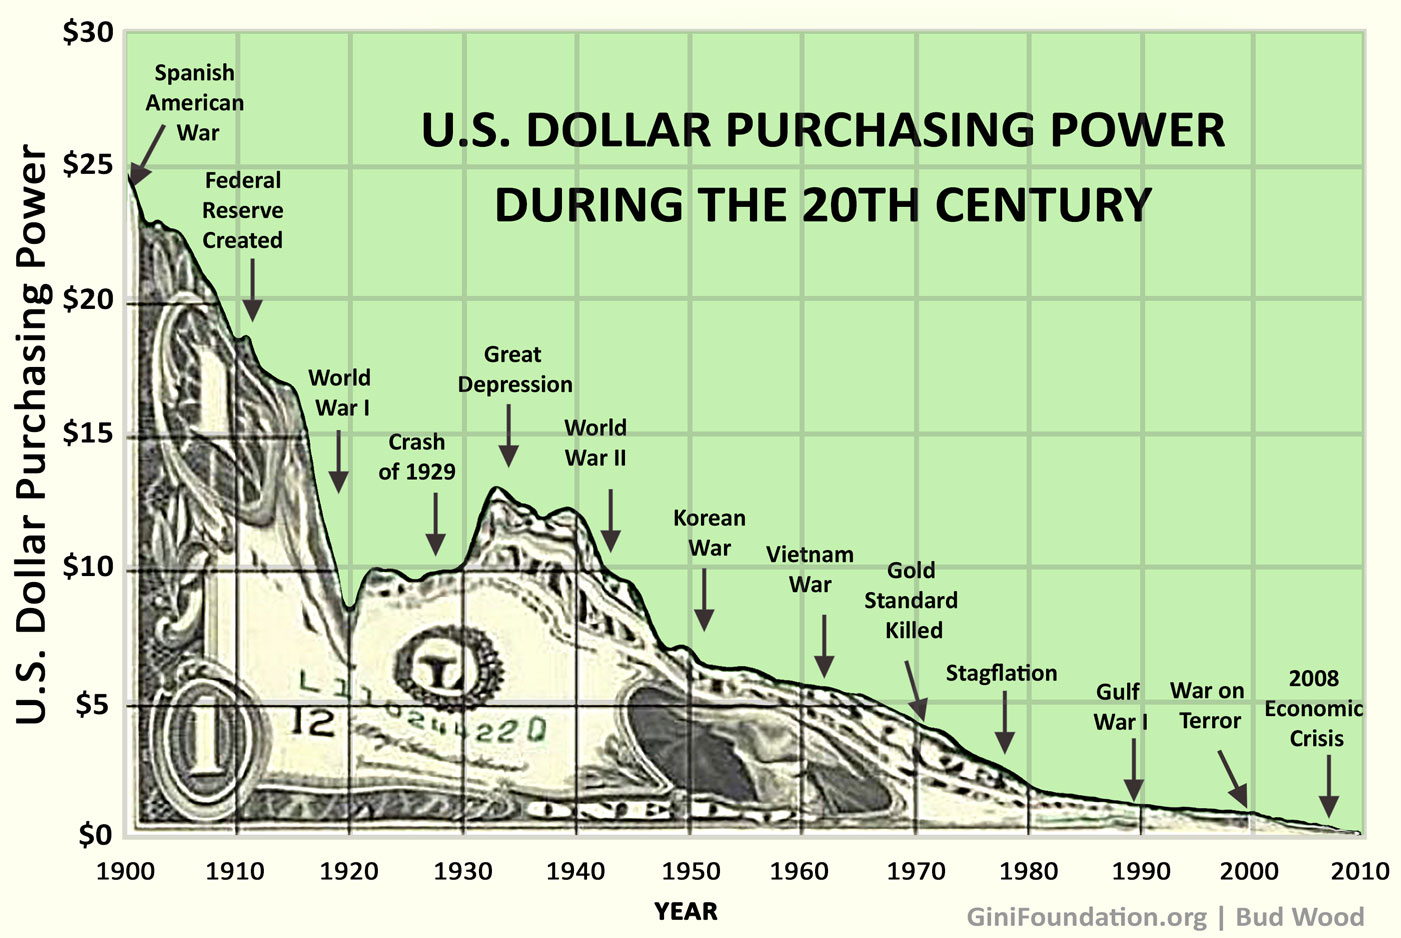 U.S. Dollar Purchasing Power During the 20th Century